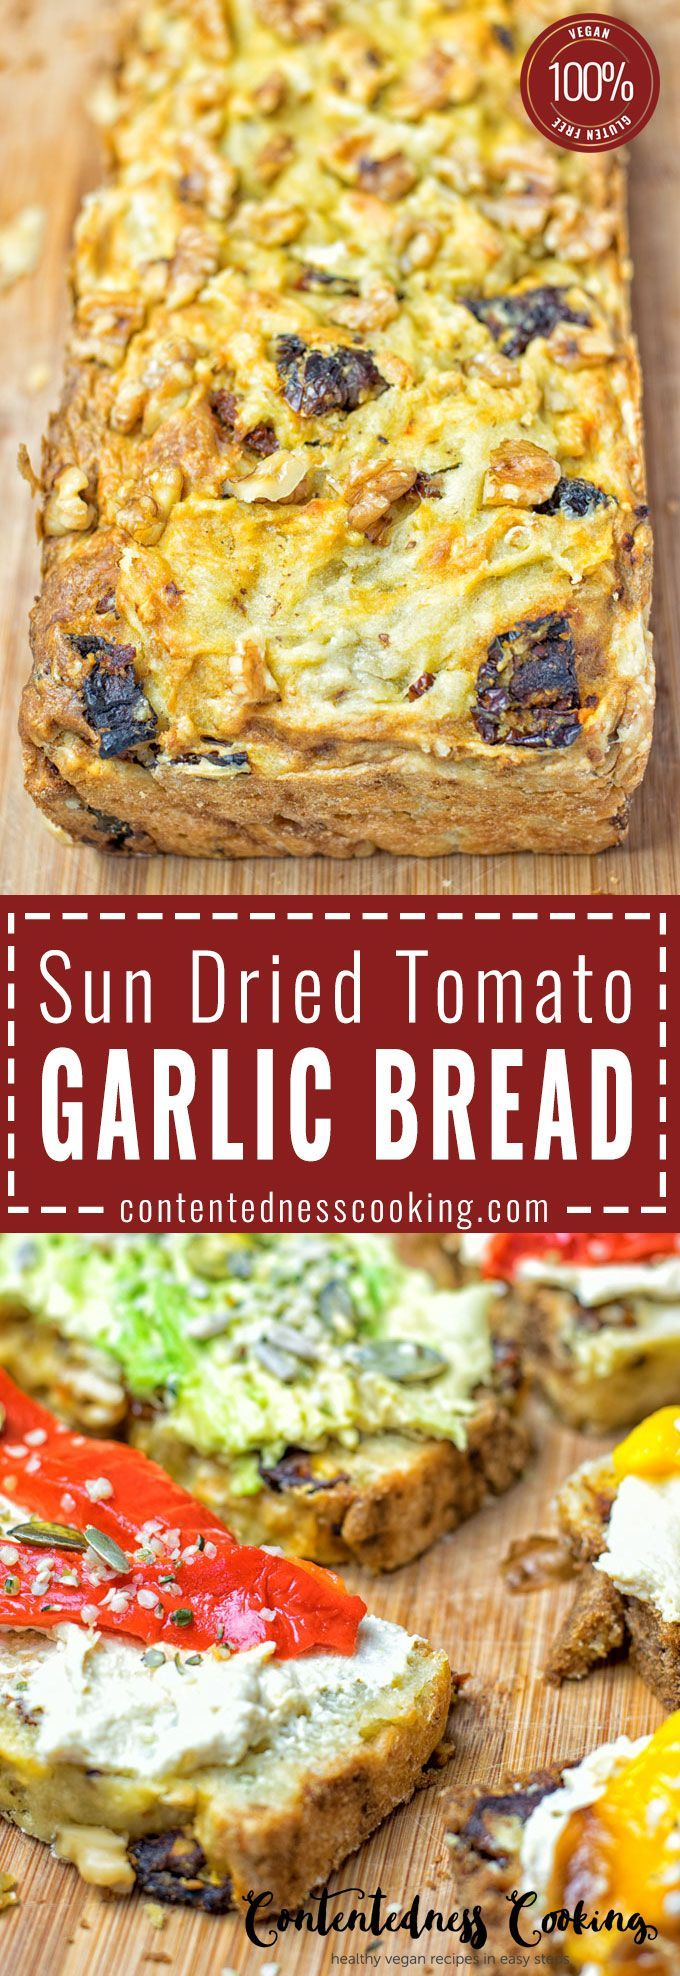 Sun Dried Tomato Garlic entirely vegan and gluten free. Only 6 ingredients, delicious for snacking, breakfast, lunch.  Also amazing with soups or salads.